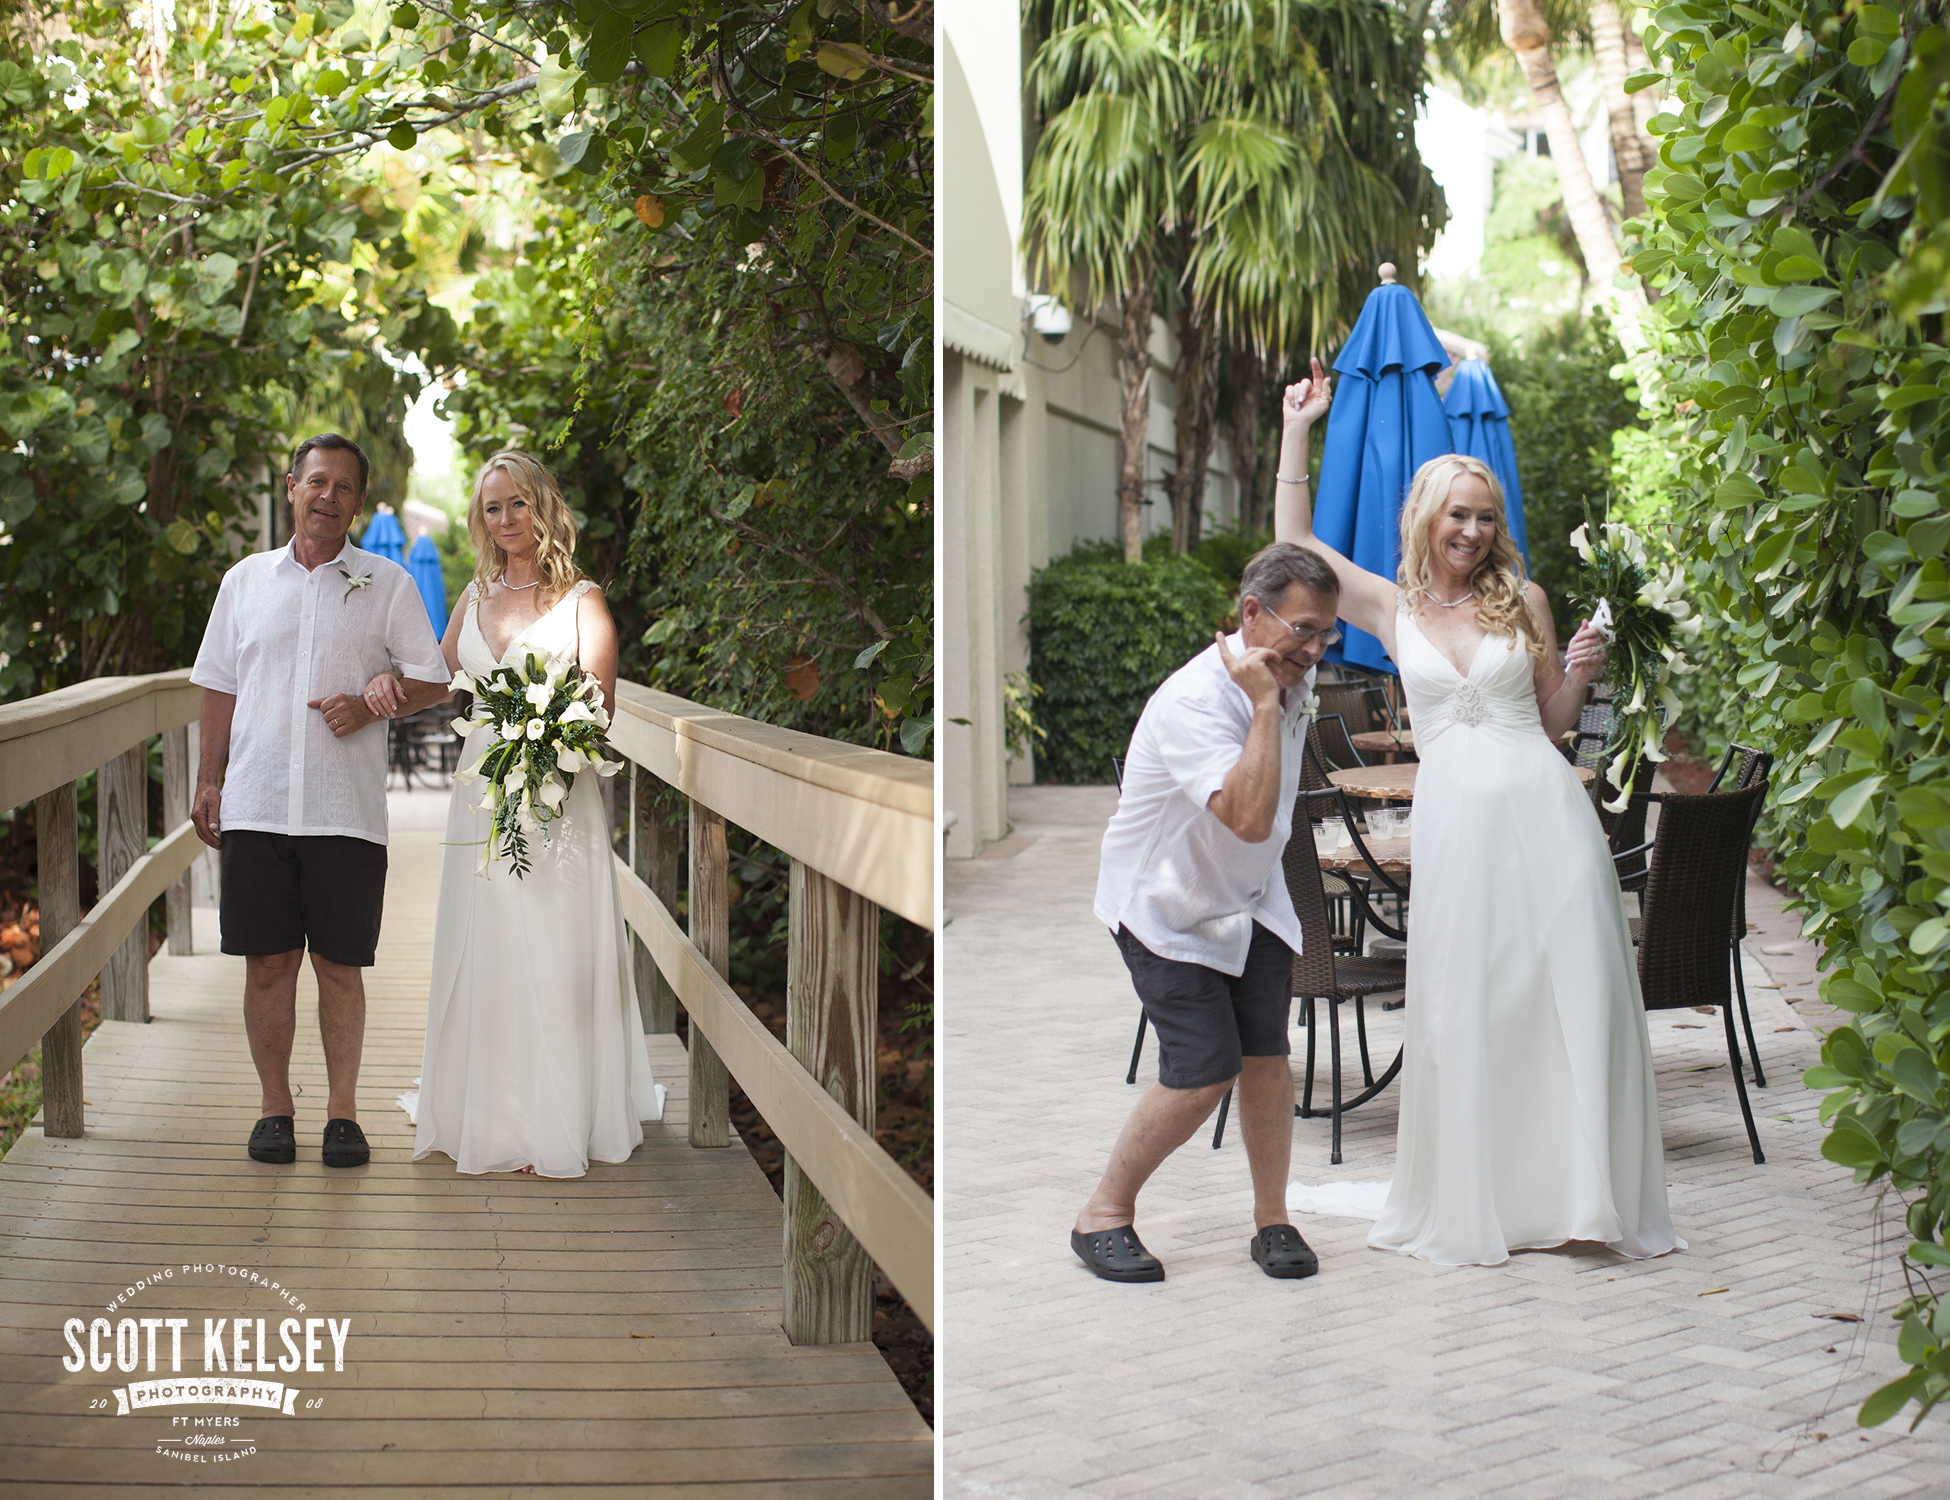 scott-kelsey-wedding-marco-island-0014